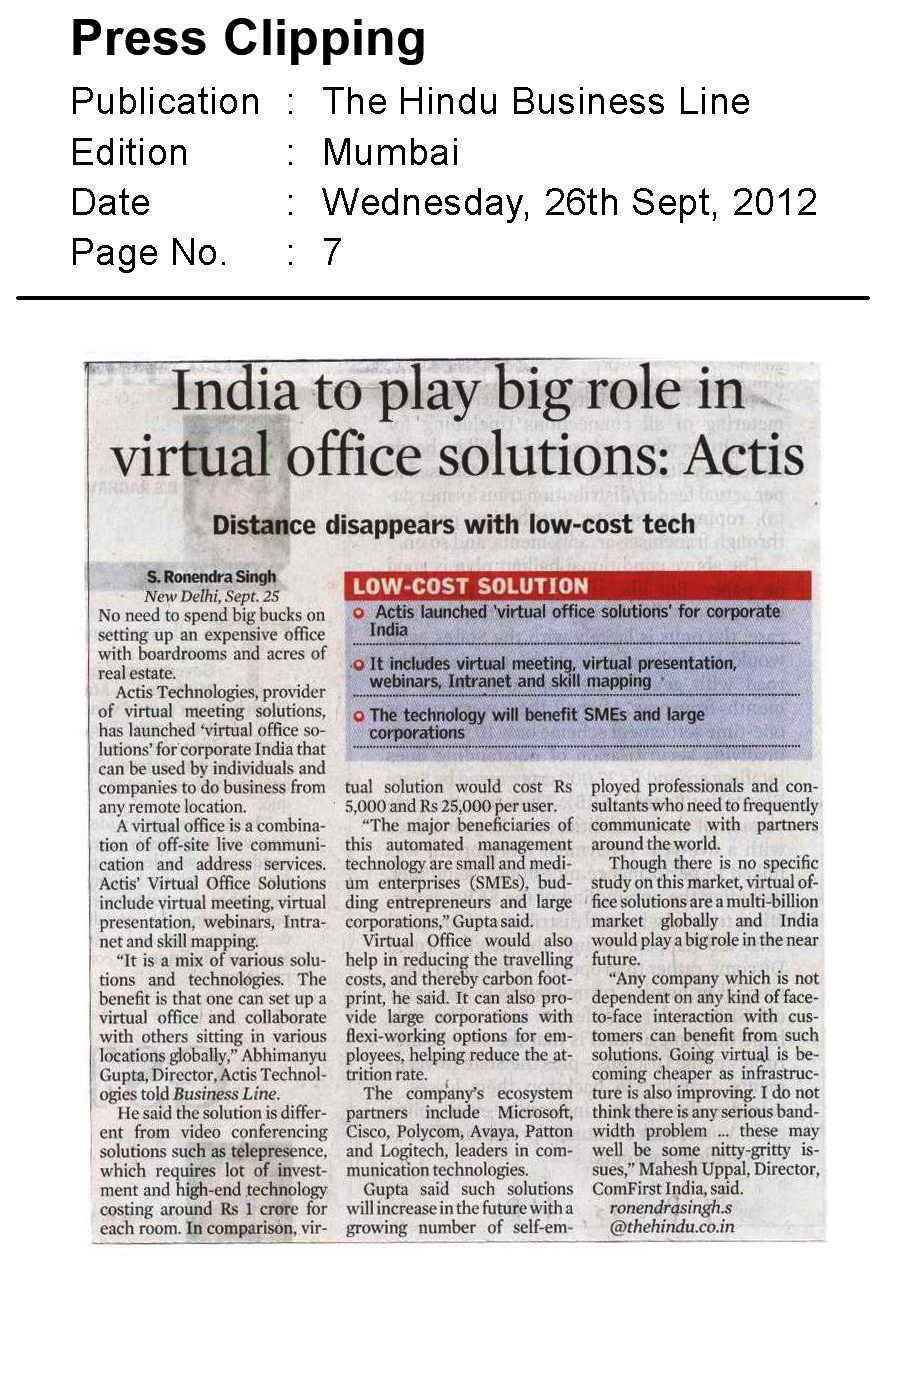 India to play big role in virtual office solutions -  Actis